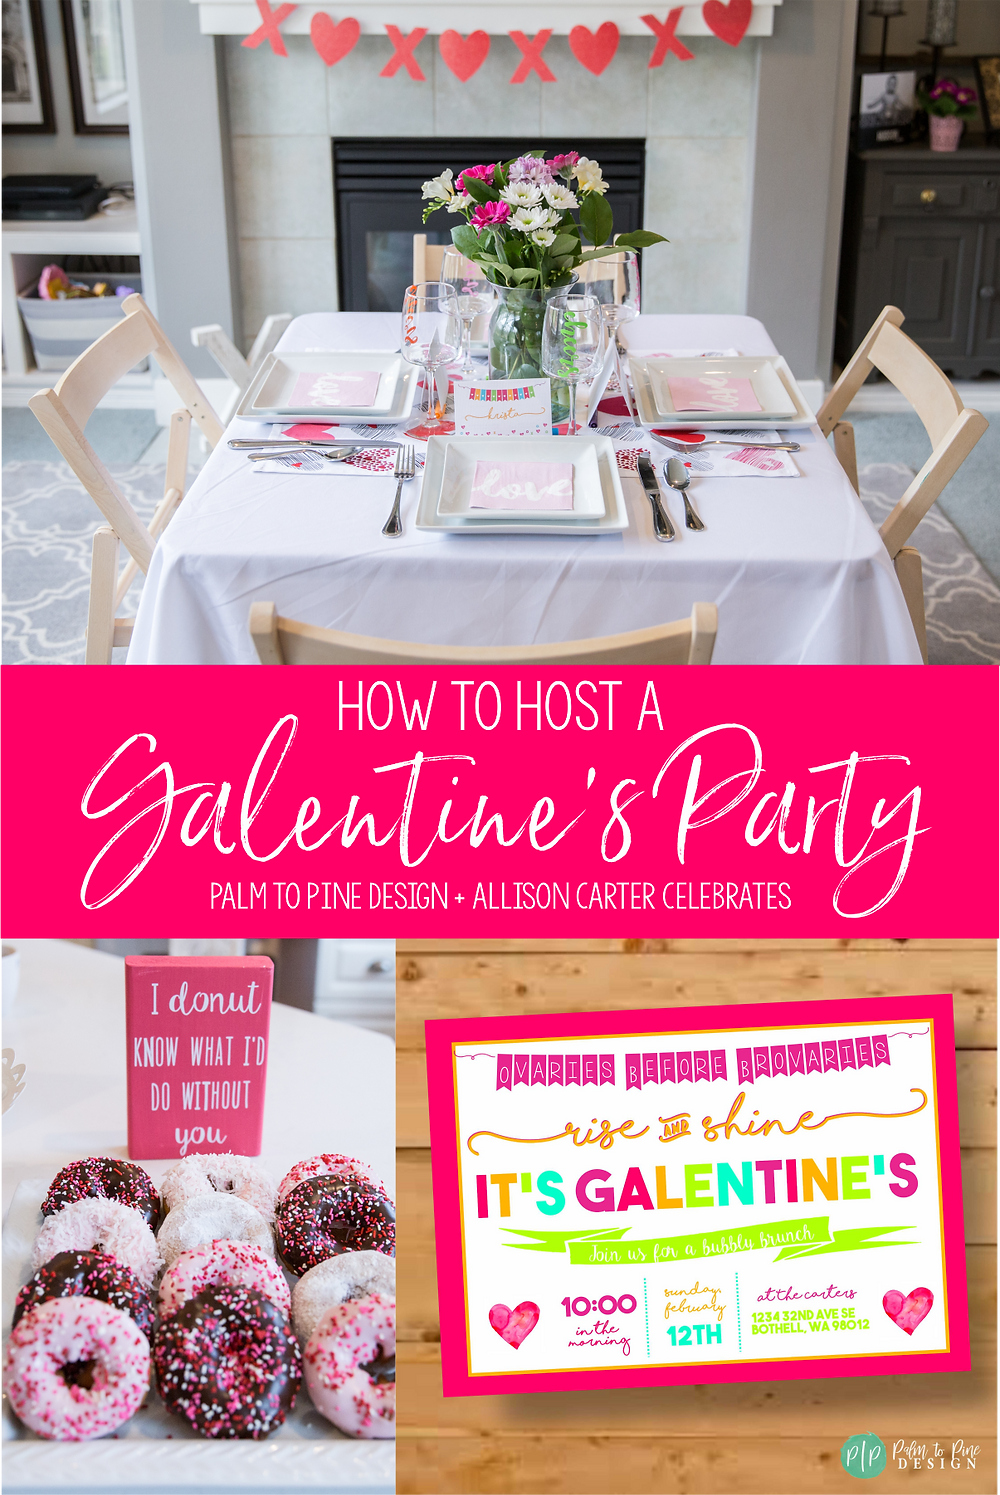 How to Host A Galentine's Party